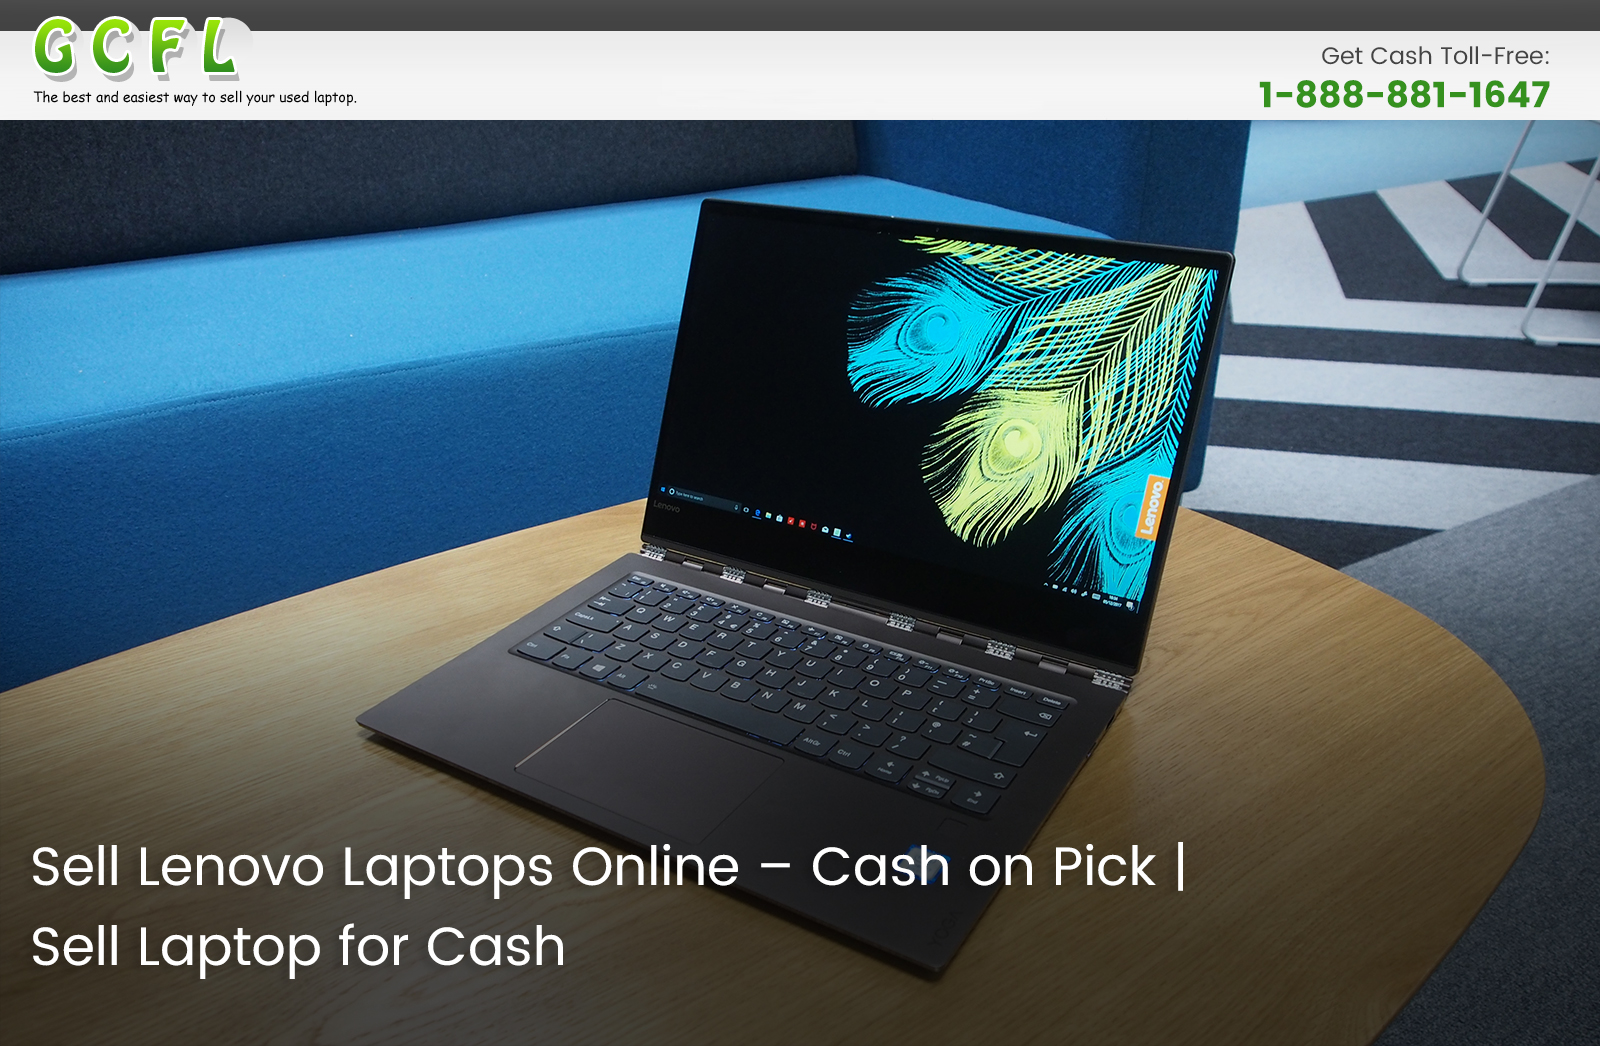 Sell Lenovo Laptops Online – Cash on Pick | Sell Laptop for Cash